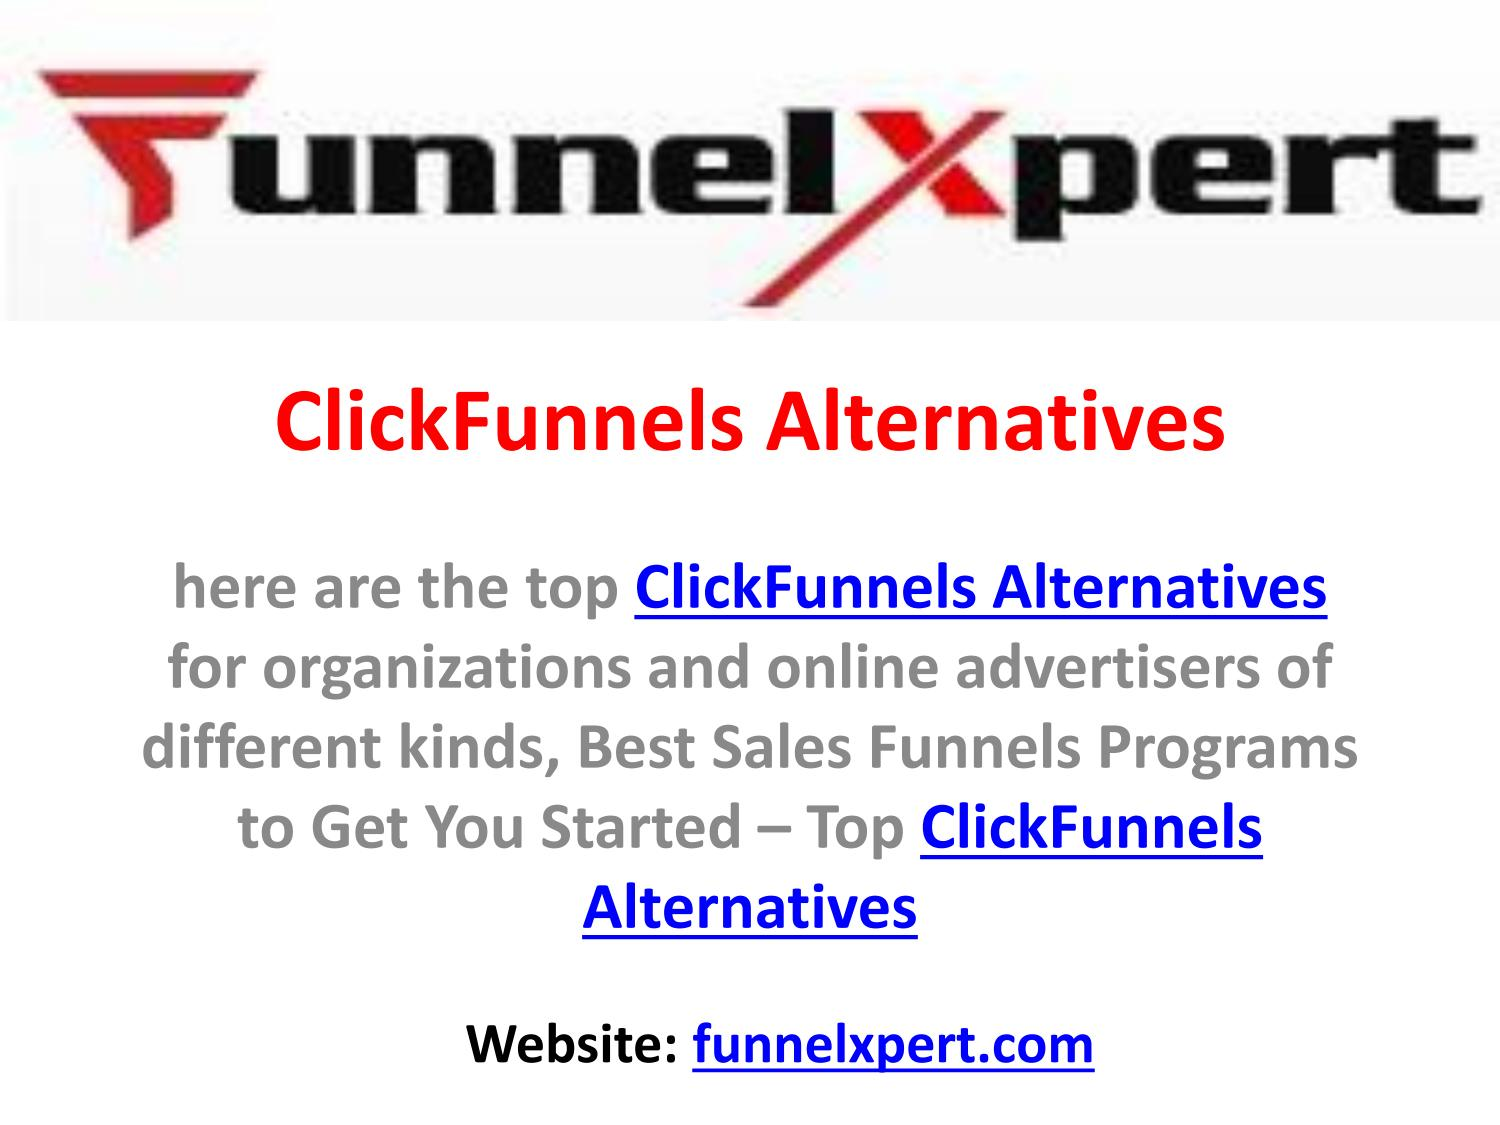 Everything about Clickfunnels Alternatives